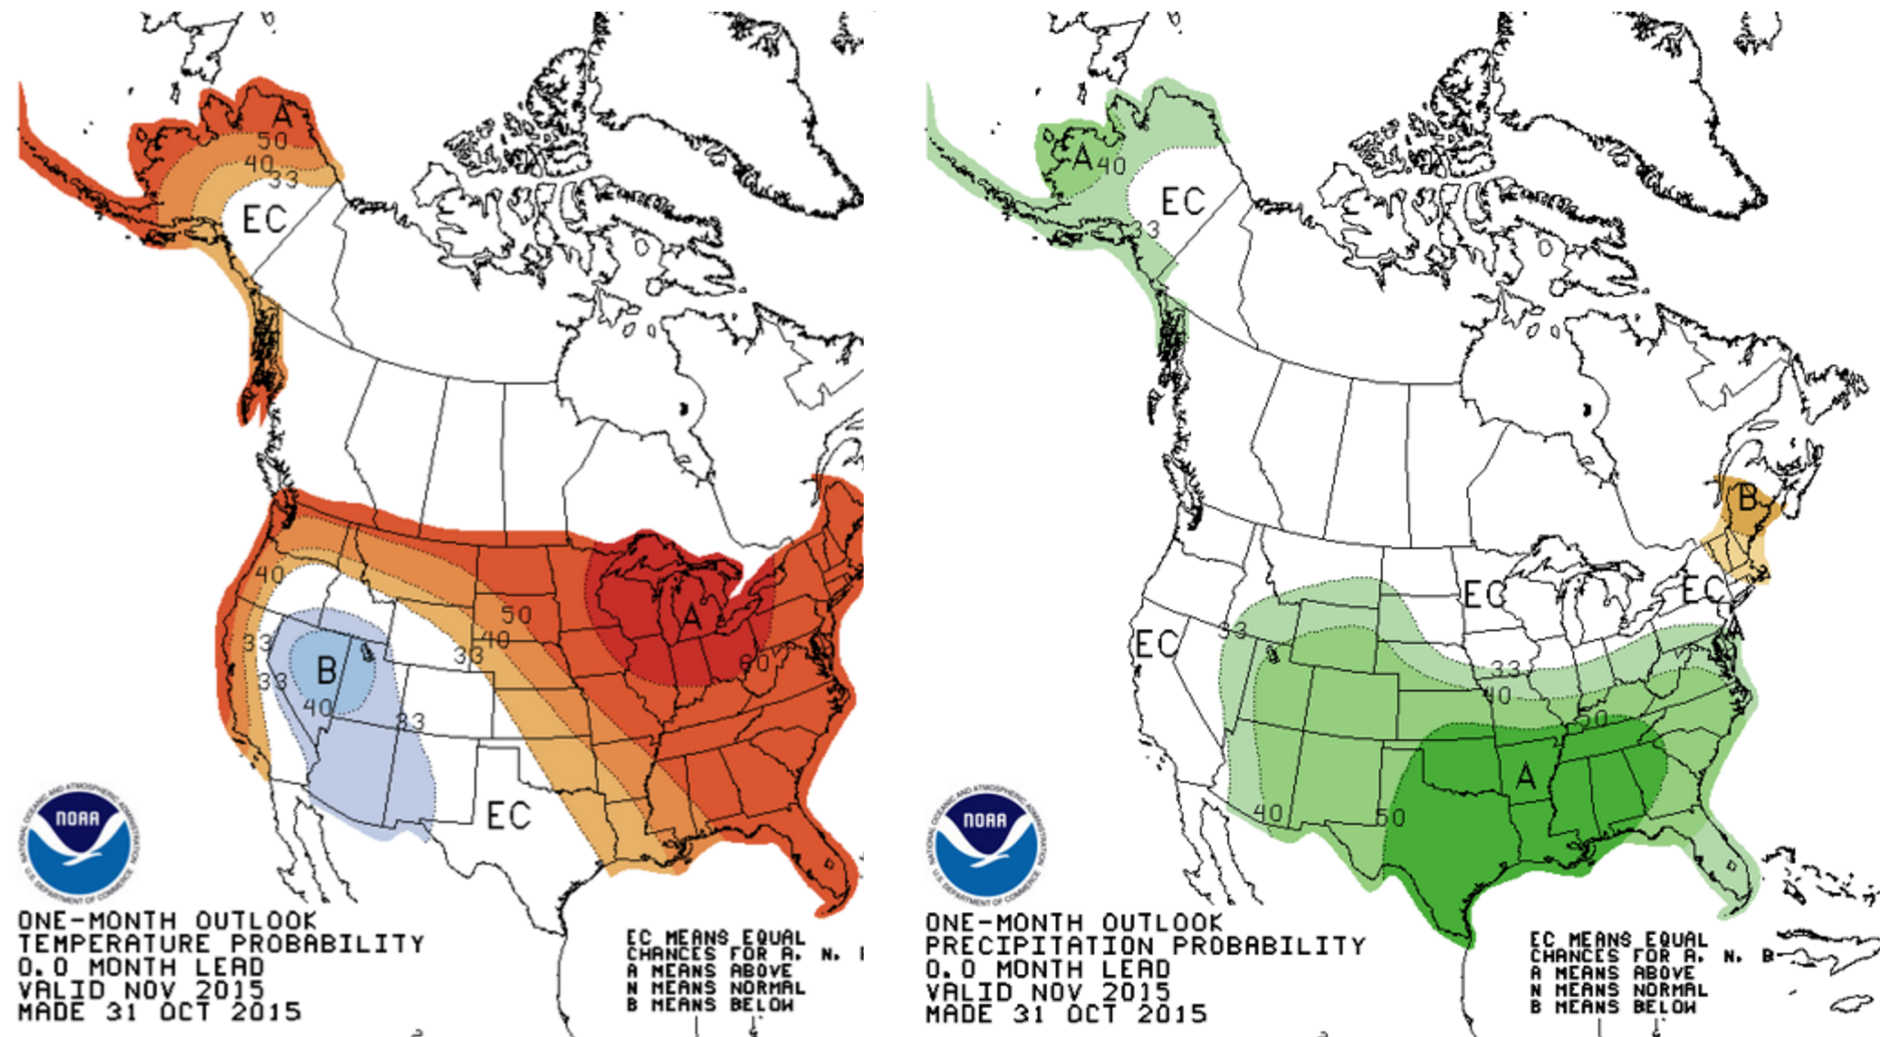 CPC Temperature and Precipitation Outlook for November 2015.